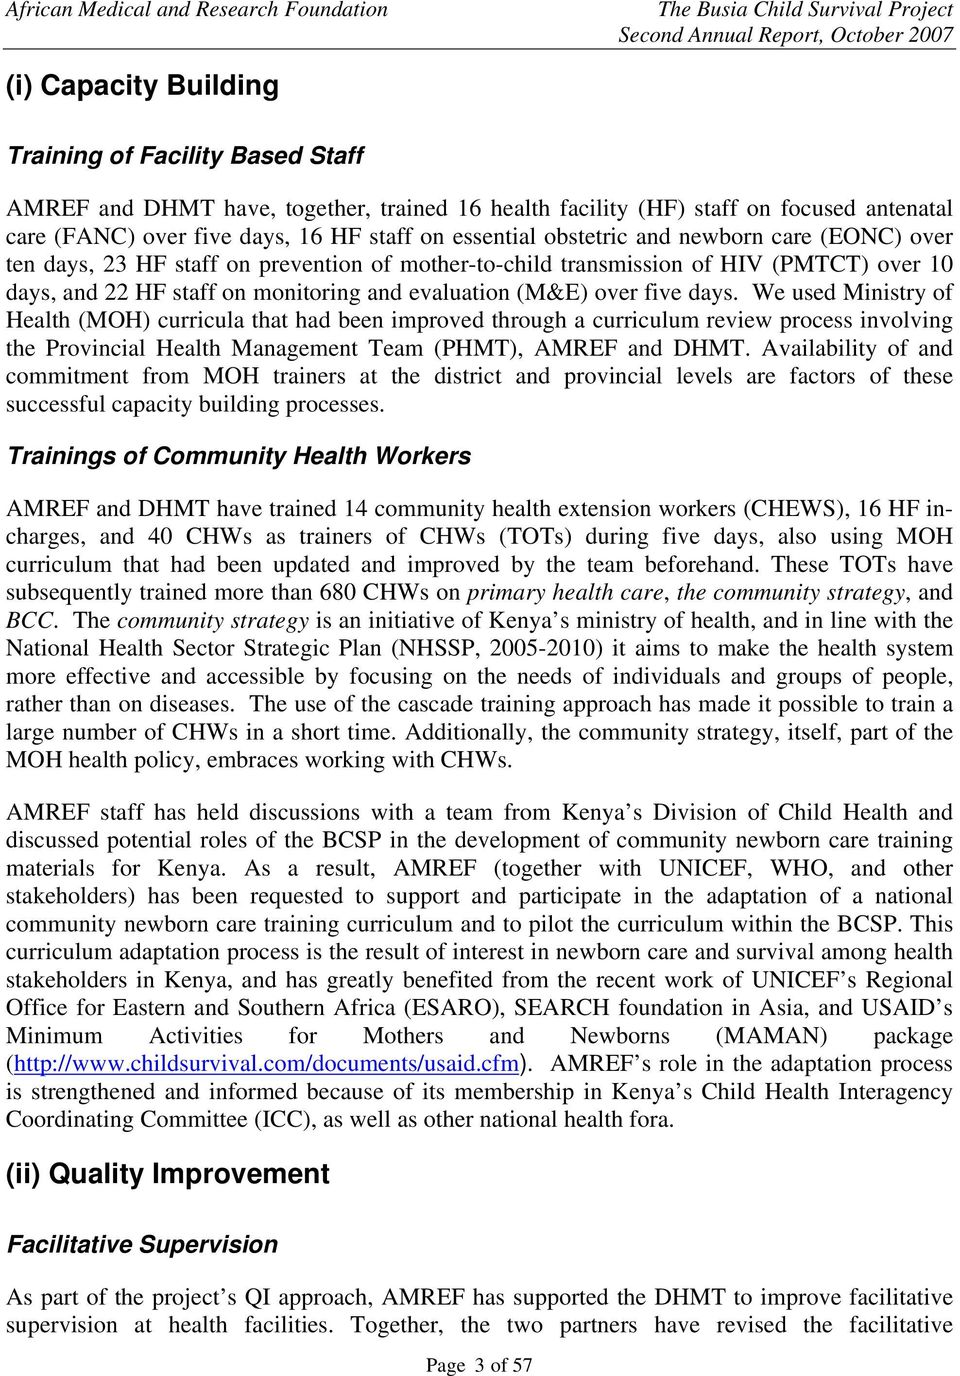 days. We used Ministry of Health (MOH) curricula that had been improved through a curriculum review process involving the Provincial Health Management Team (PHMT), AMREF and DHMT.